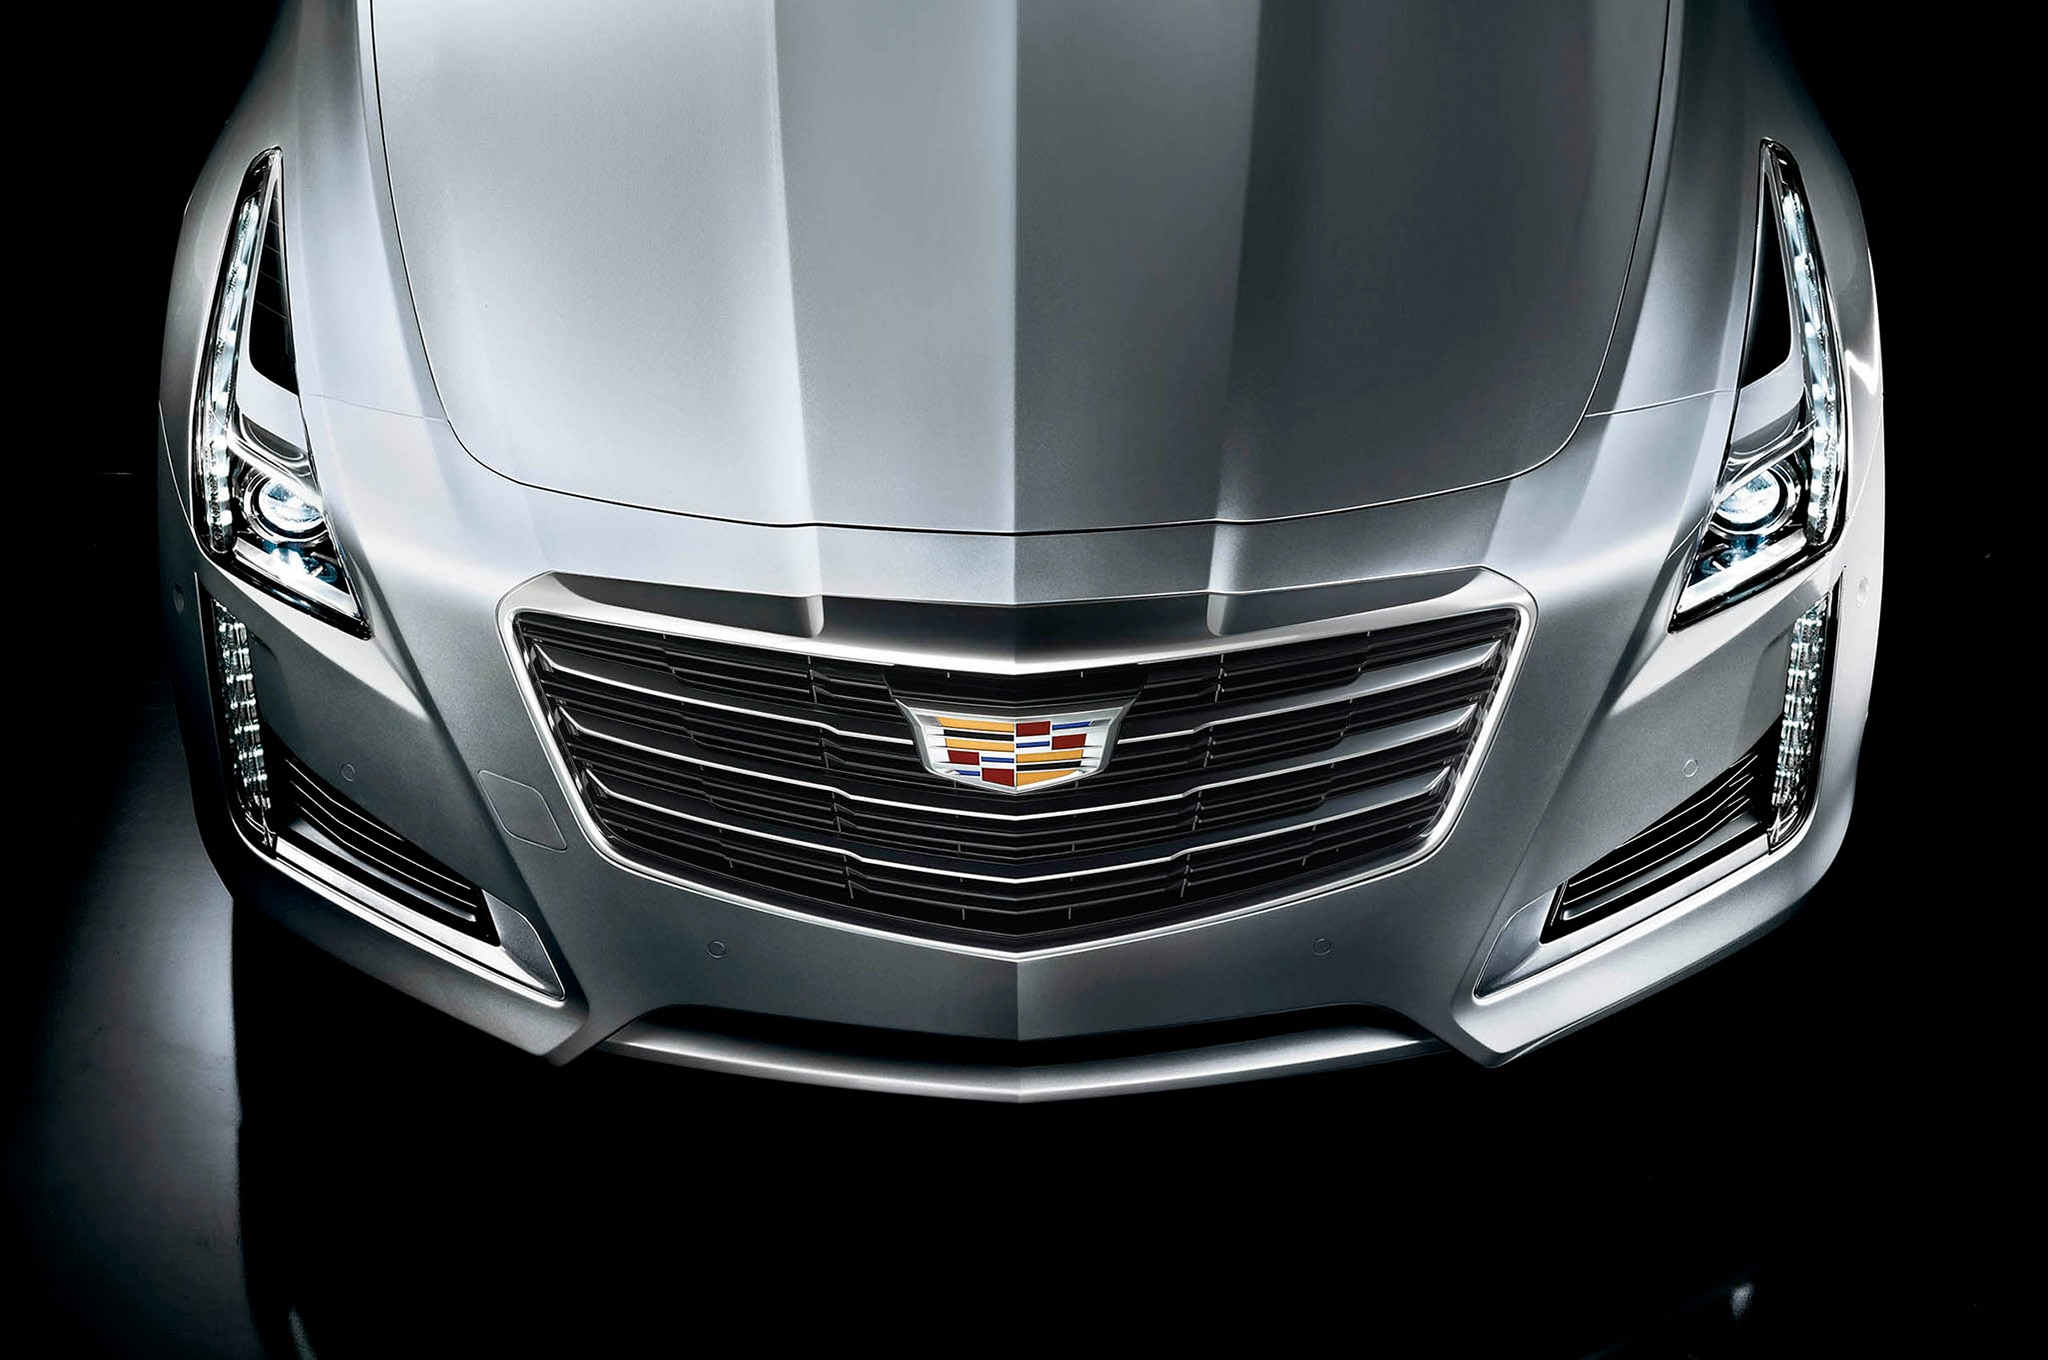 Cadillac Announces Japan Only White Edition For 2017 ATS